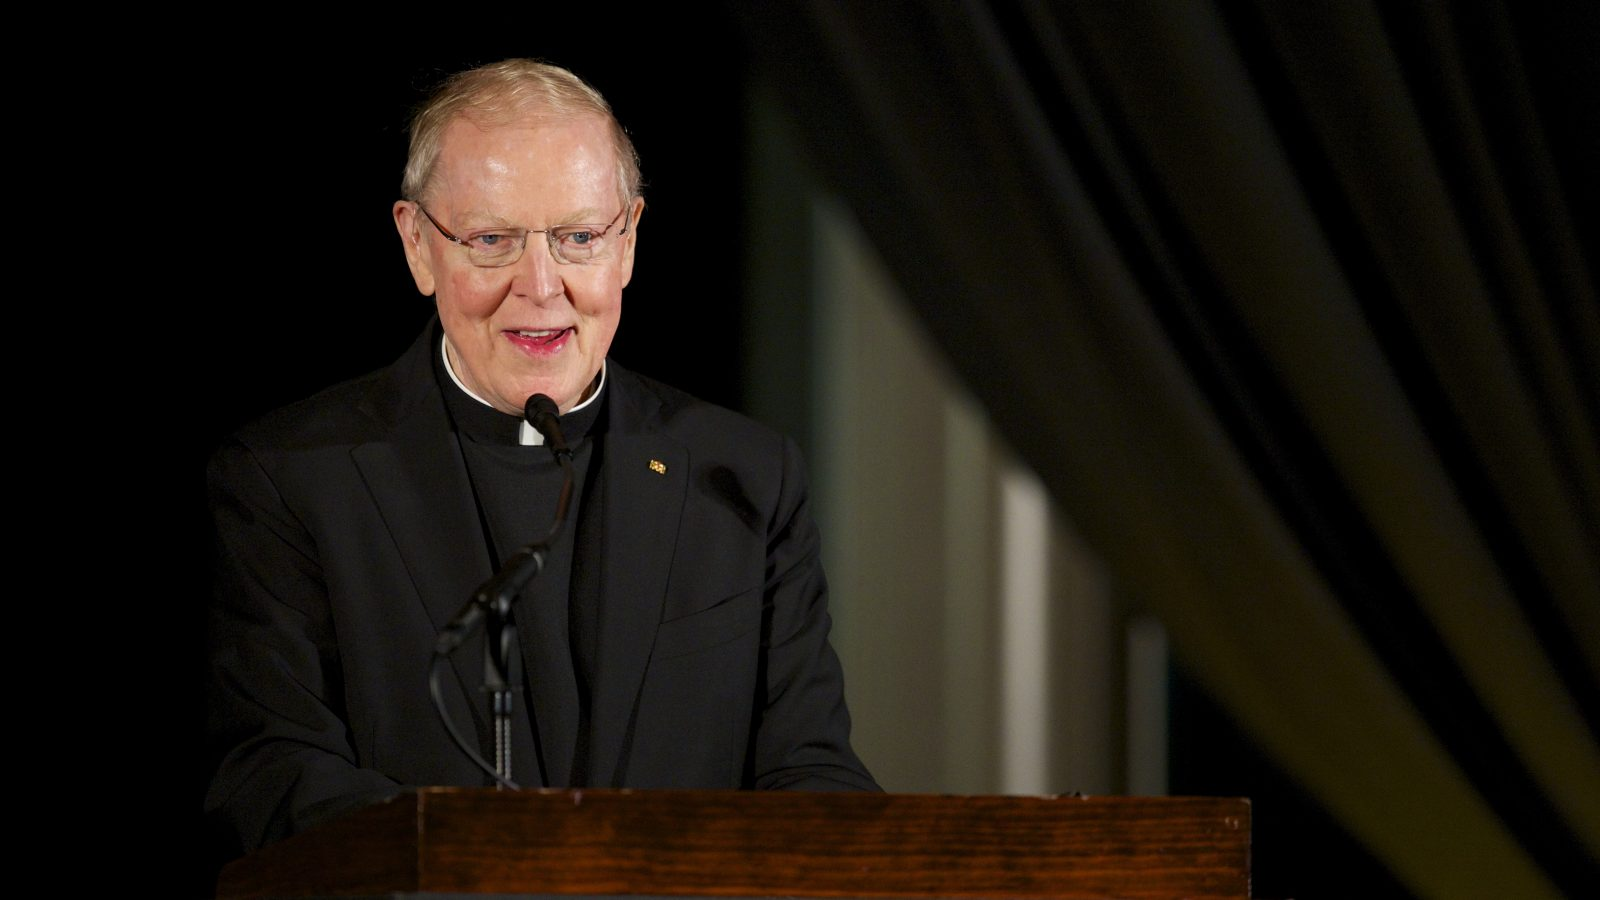 Father Leo J. O'Donovan speaks at a podiium